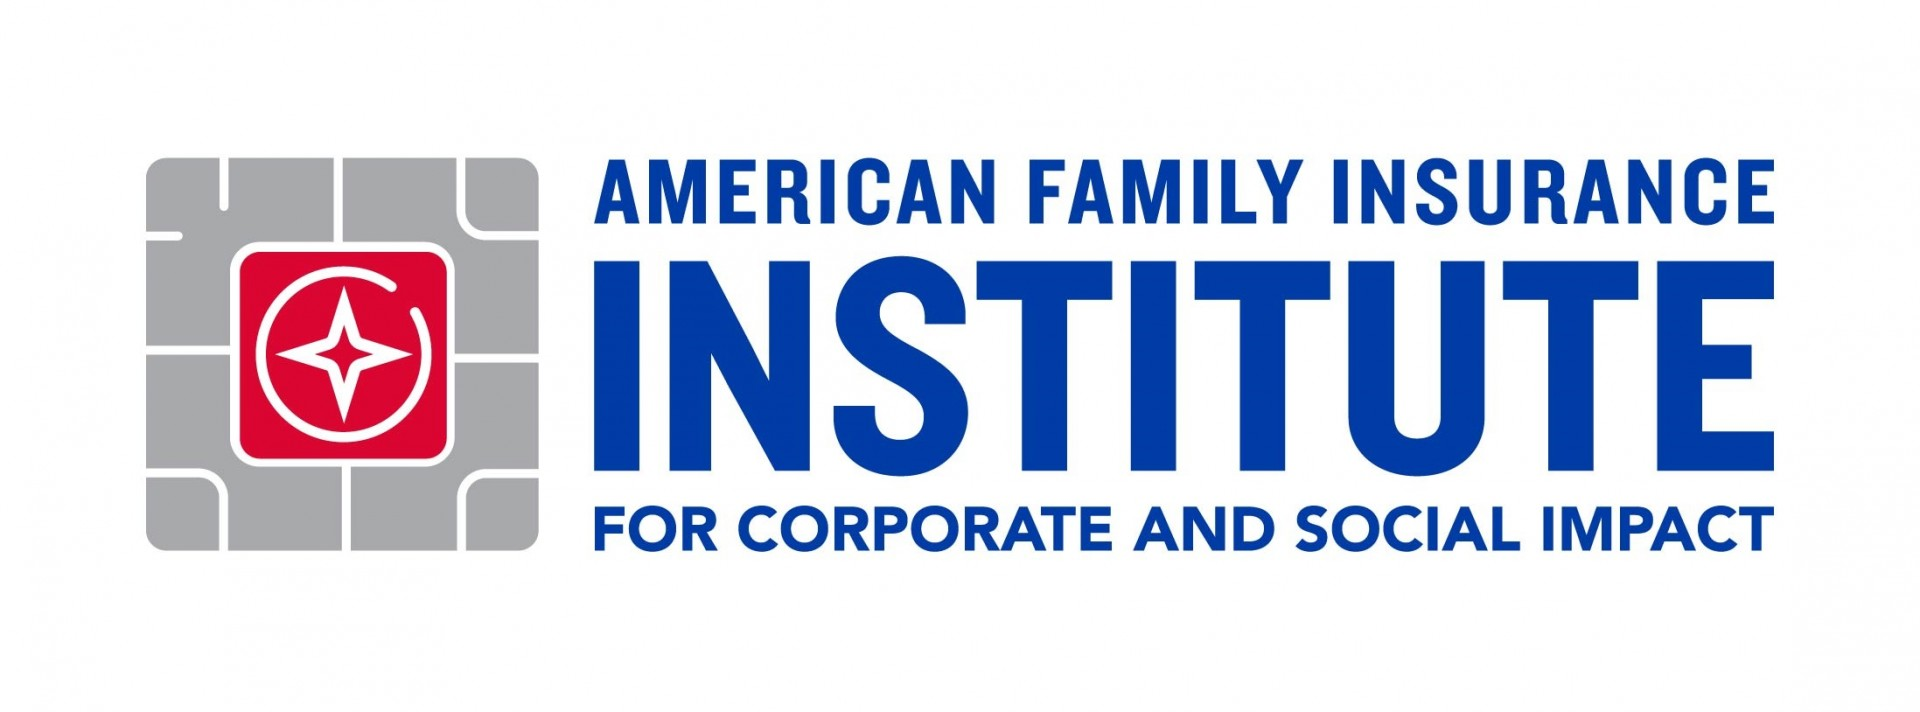 American Family Institute for Corporate and Social Impact